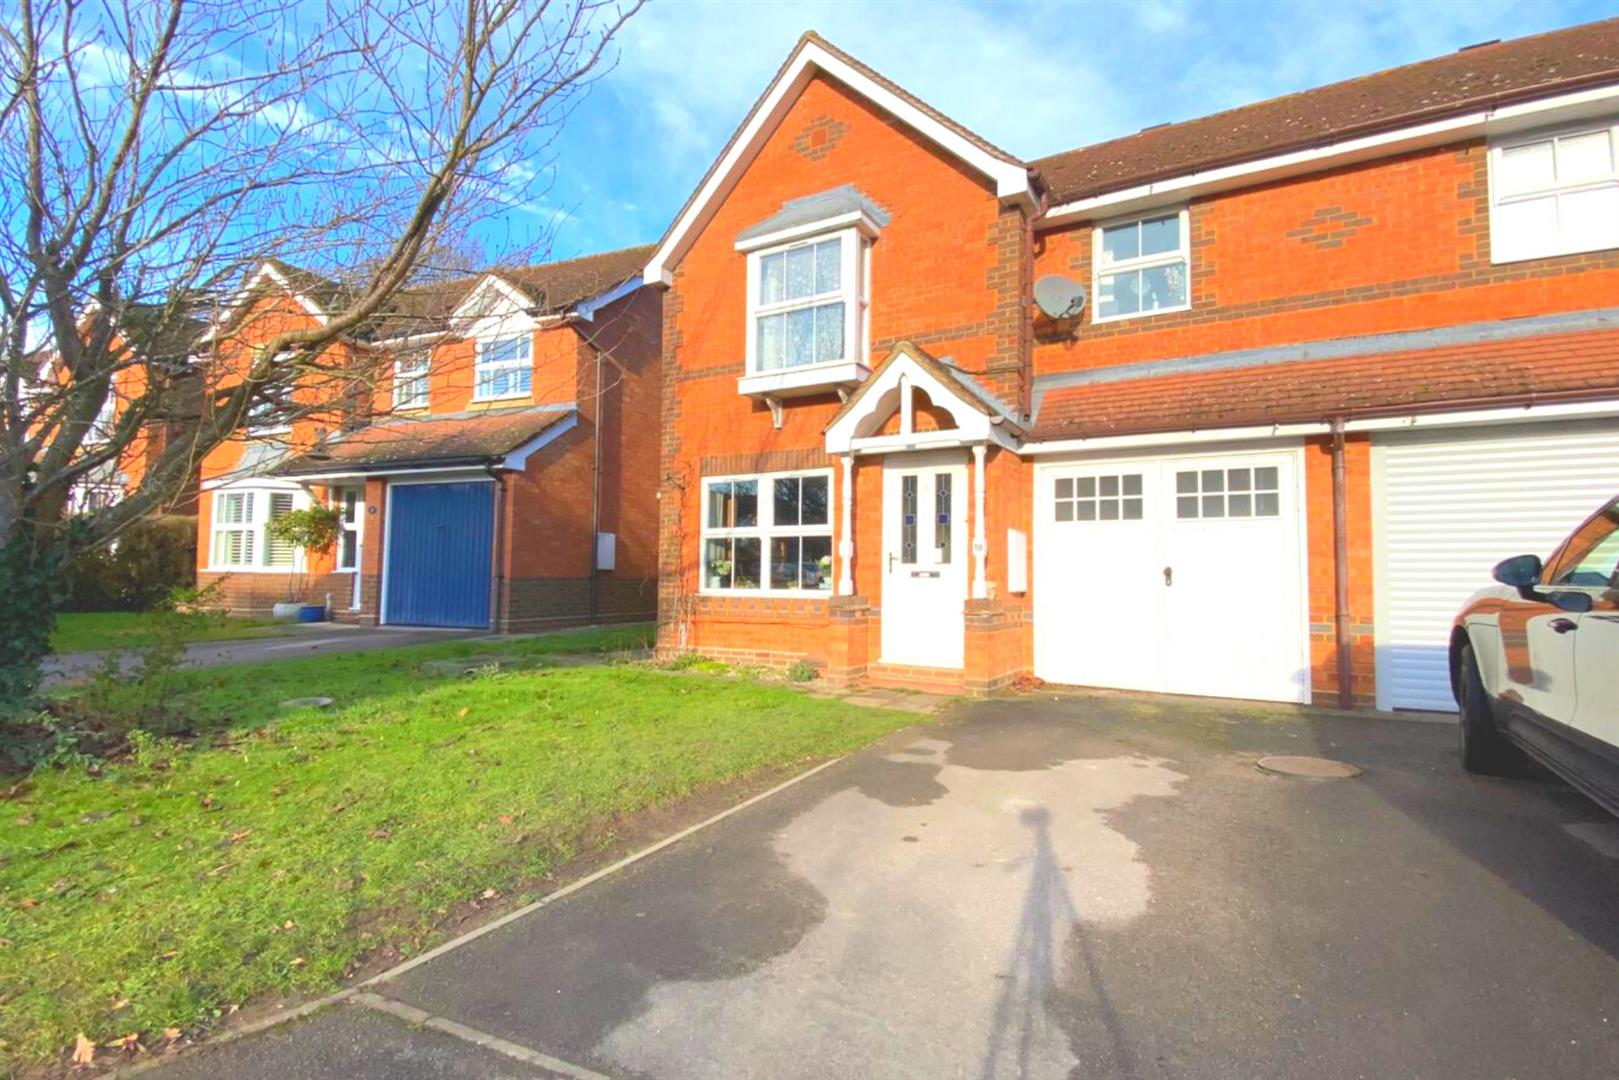 3 bed semi-detached for sale in Woodley 1